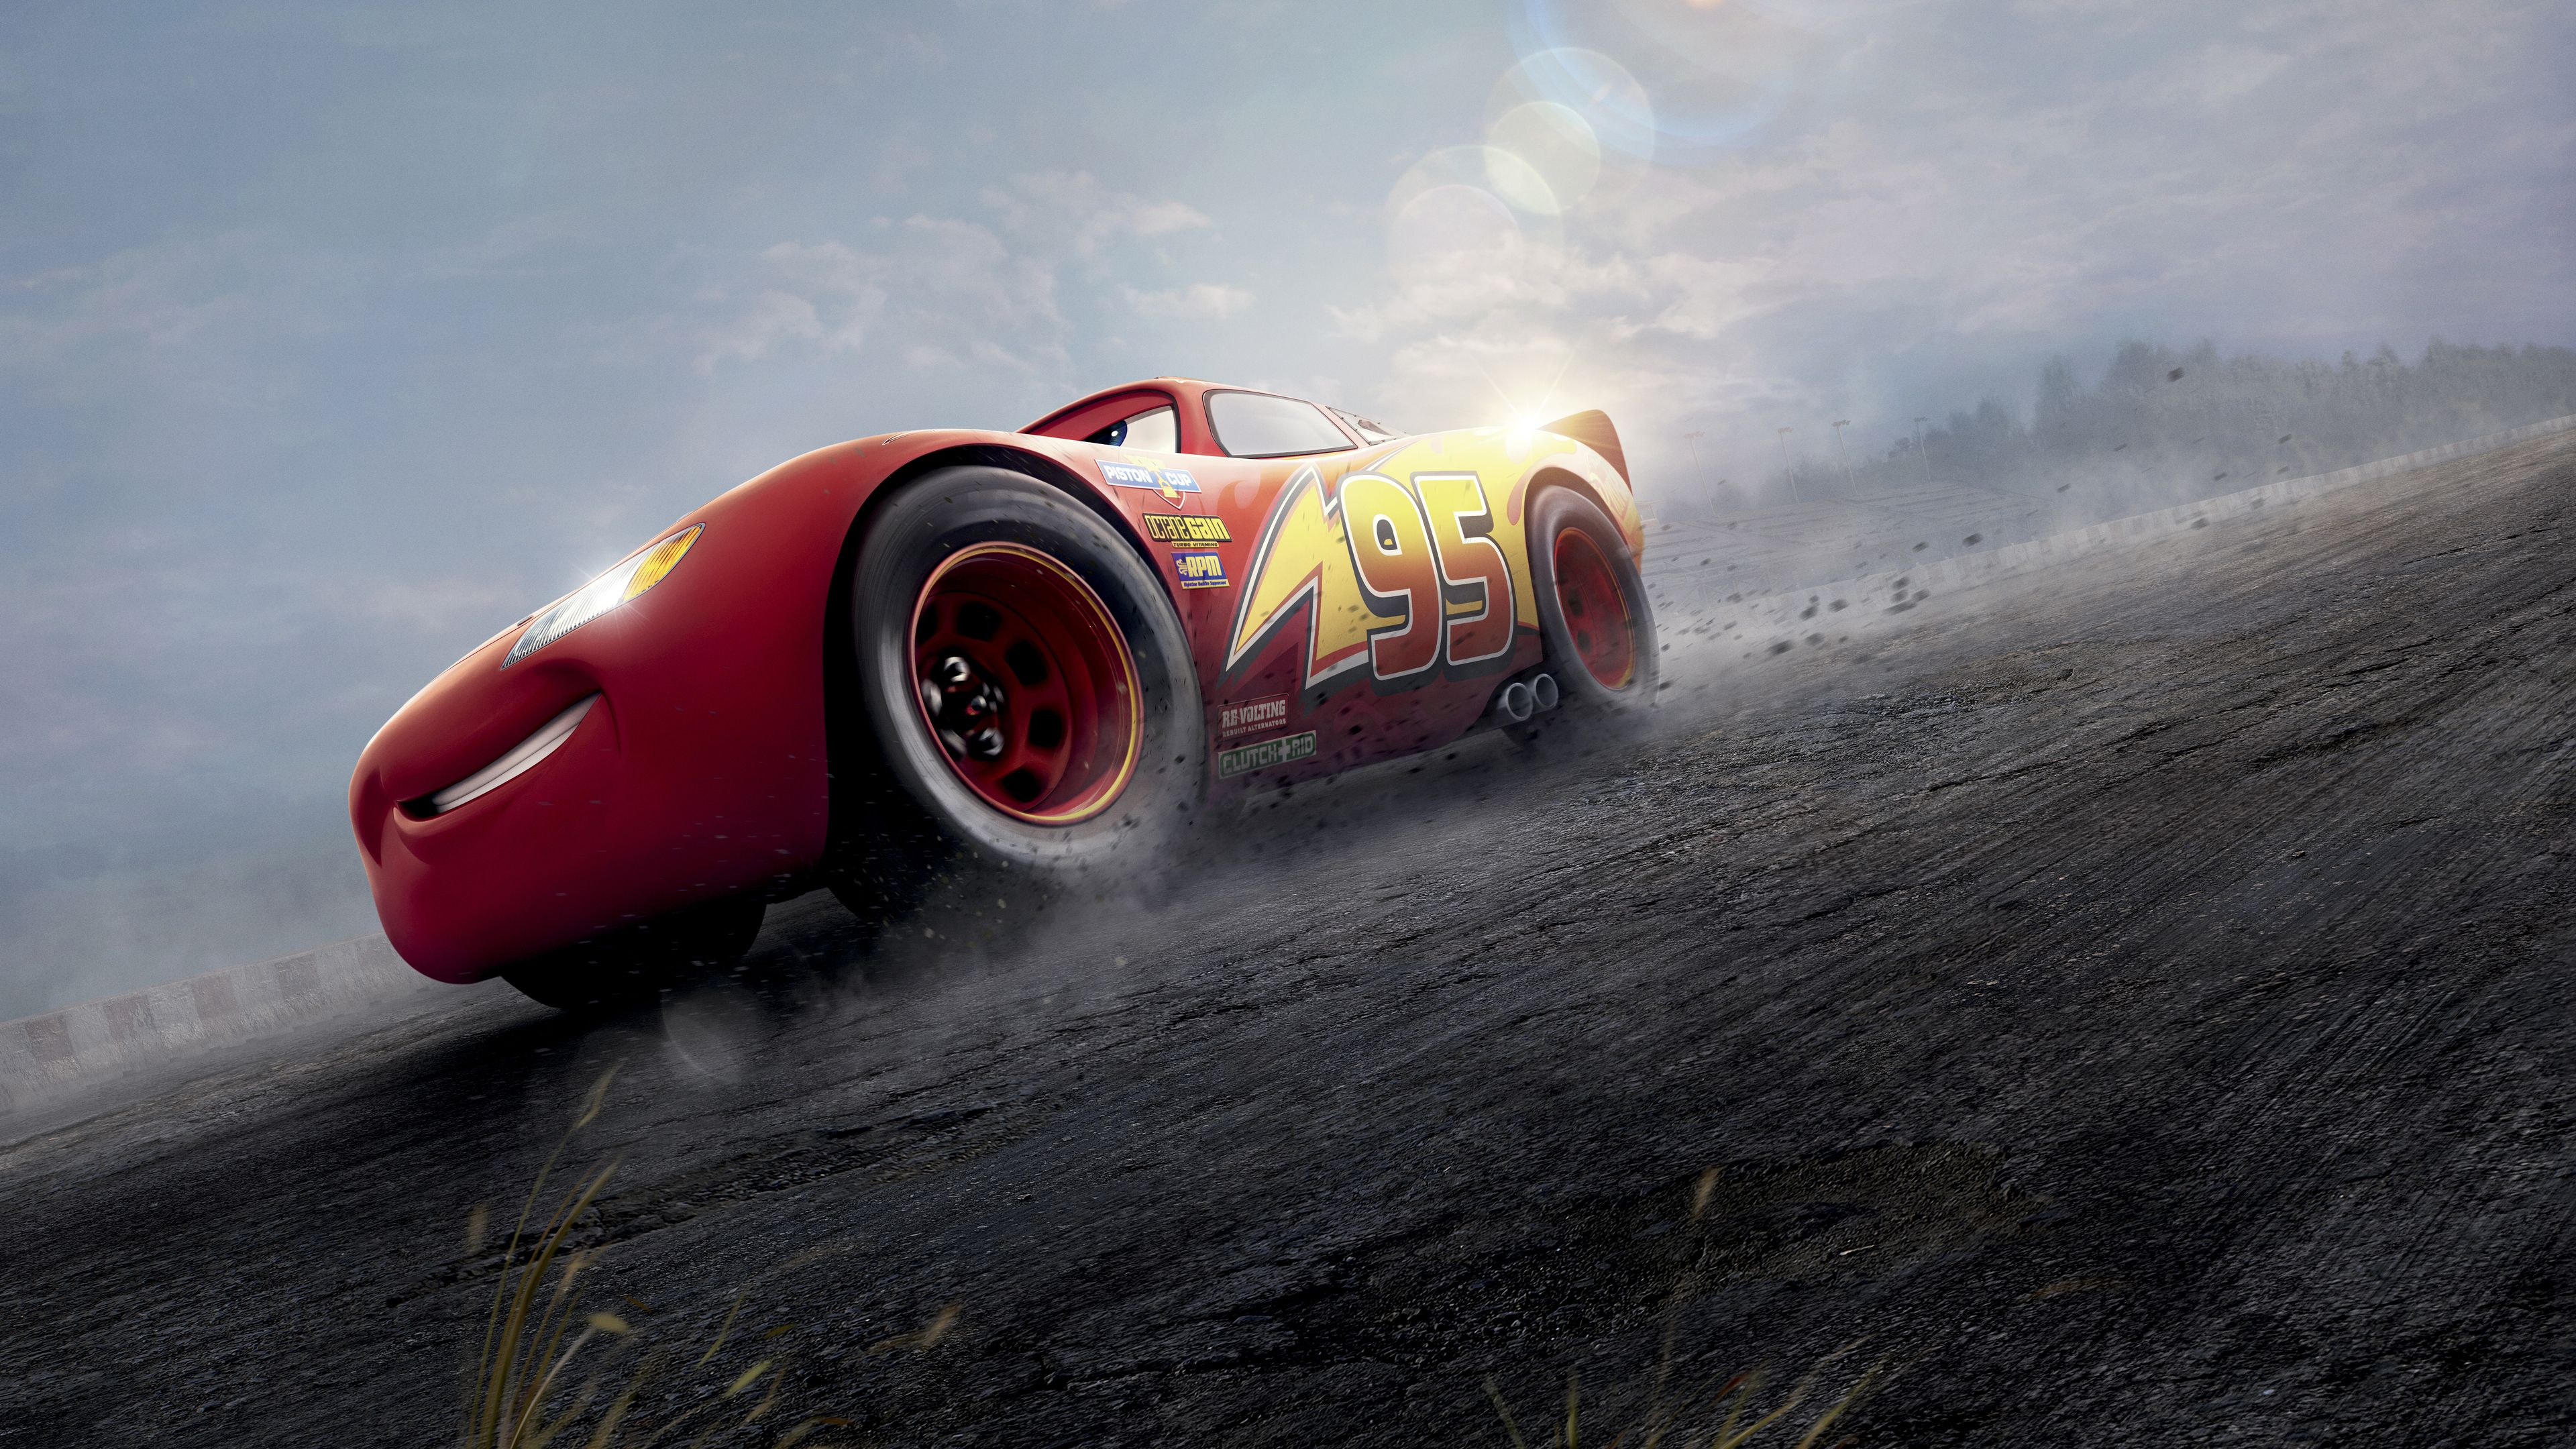 Wallpaper 4k Cars 3 Red Lightning Mcqueen 4k 4k Wallpapers Cars 3 Wallpapers Hd Wallpapers Movies Wallpapers Carros